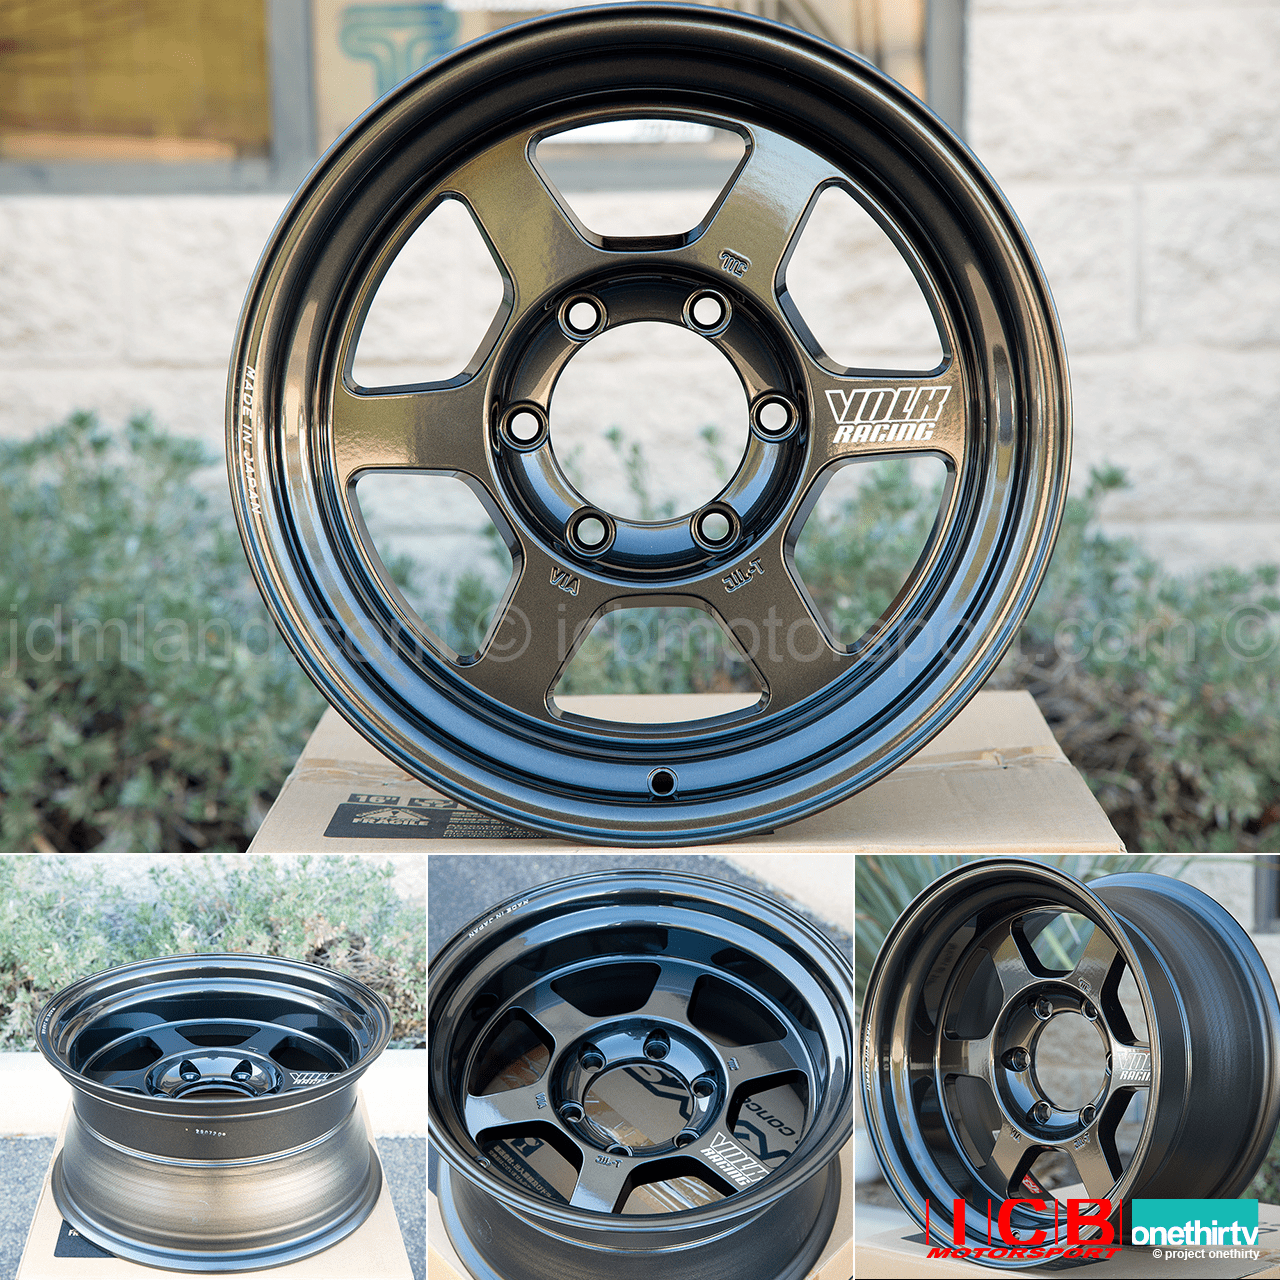 Rays Volk Racing TE37X Progressive Model Wheels 16X8 6X139.7 0 Offset Diamond Black Large P.C.D.